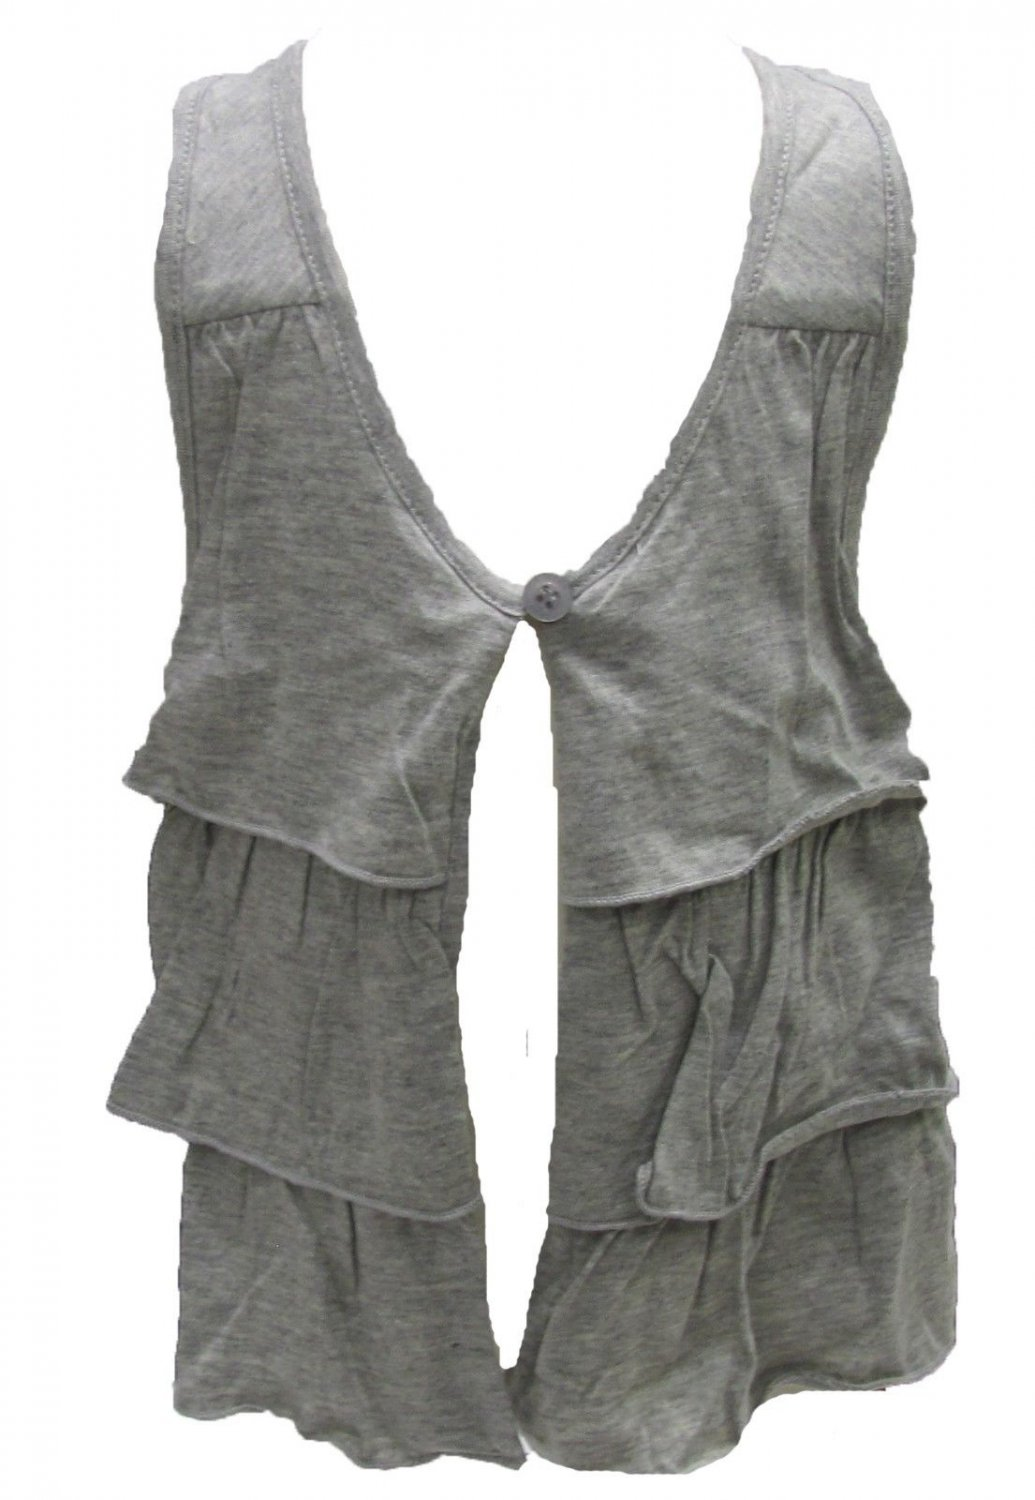 DKNY Toddler Girls 2T Heather Gray Tiered Ruffle Racerback Vest New